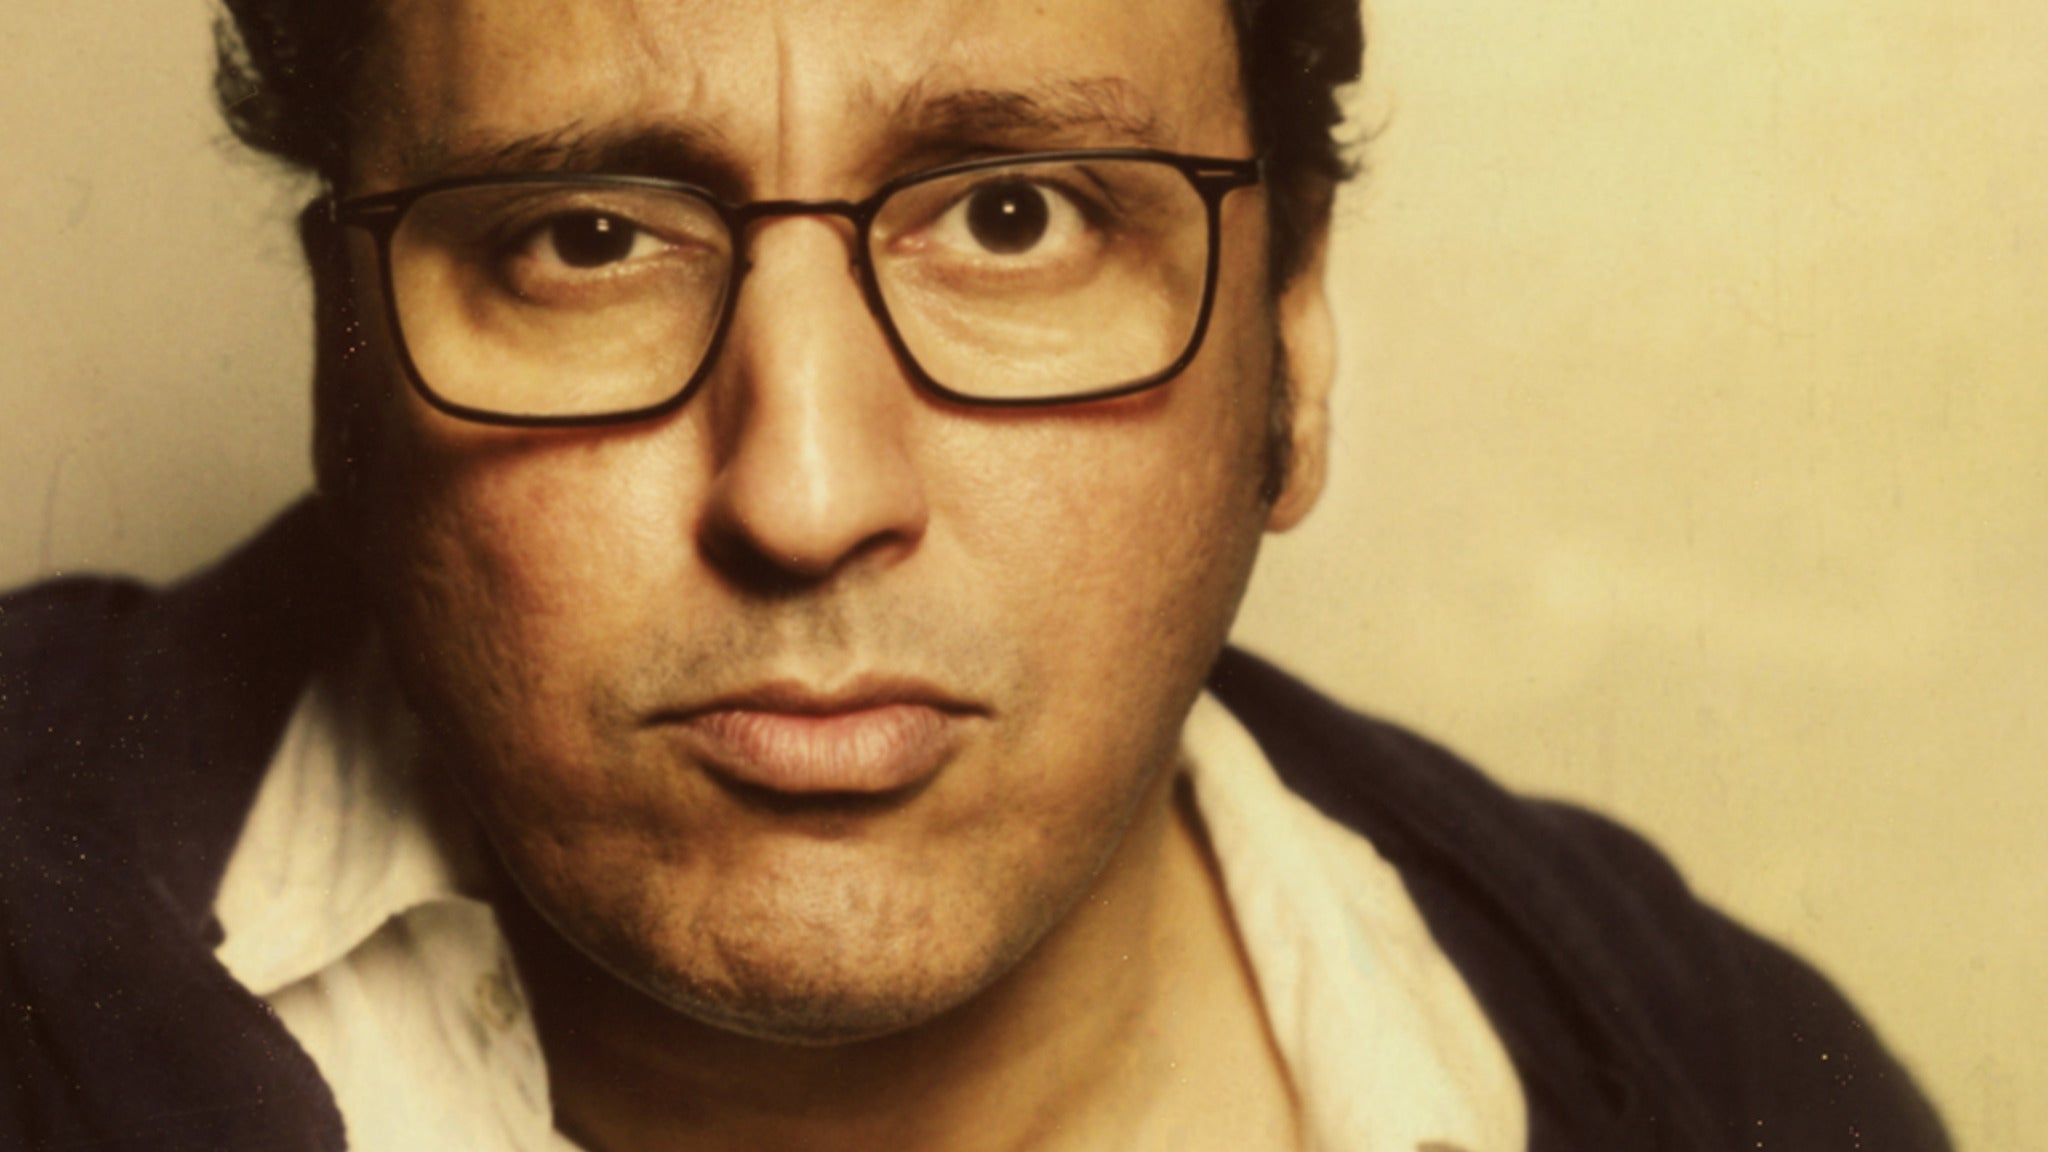 Aasif Mandvi at Cobb's Comedy Club